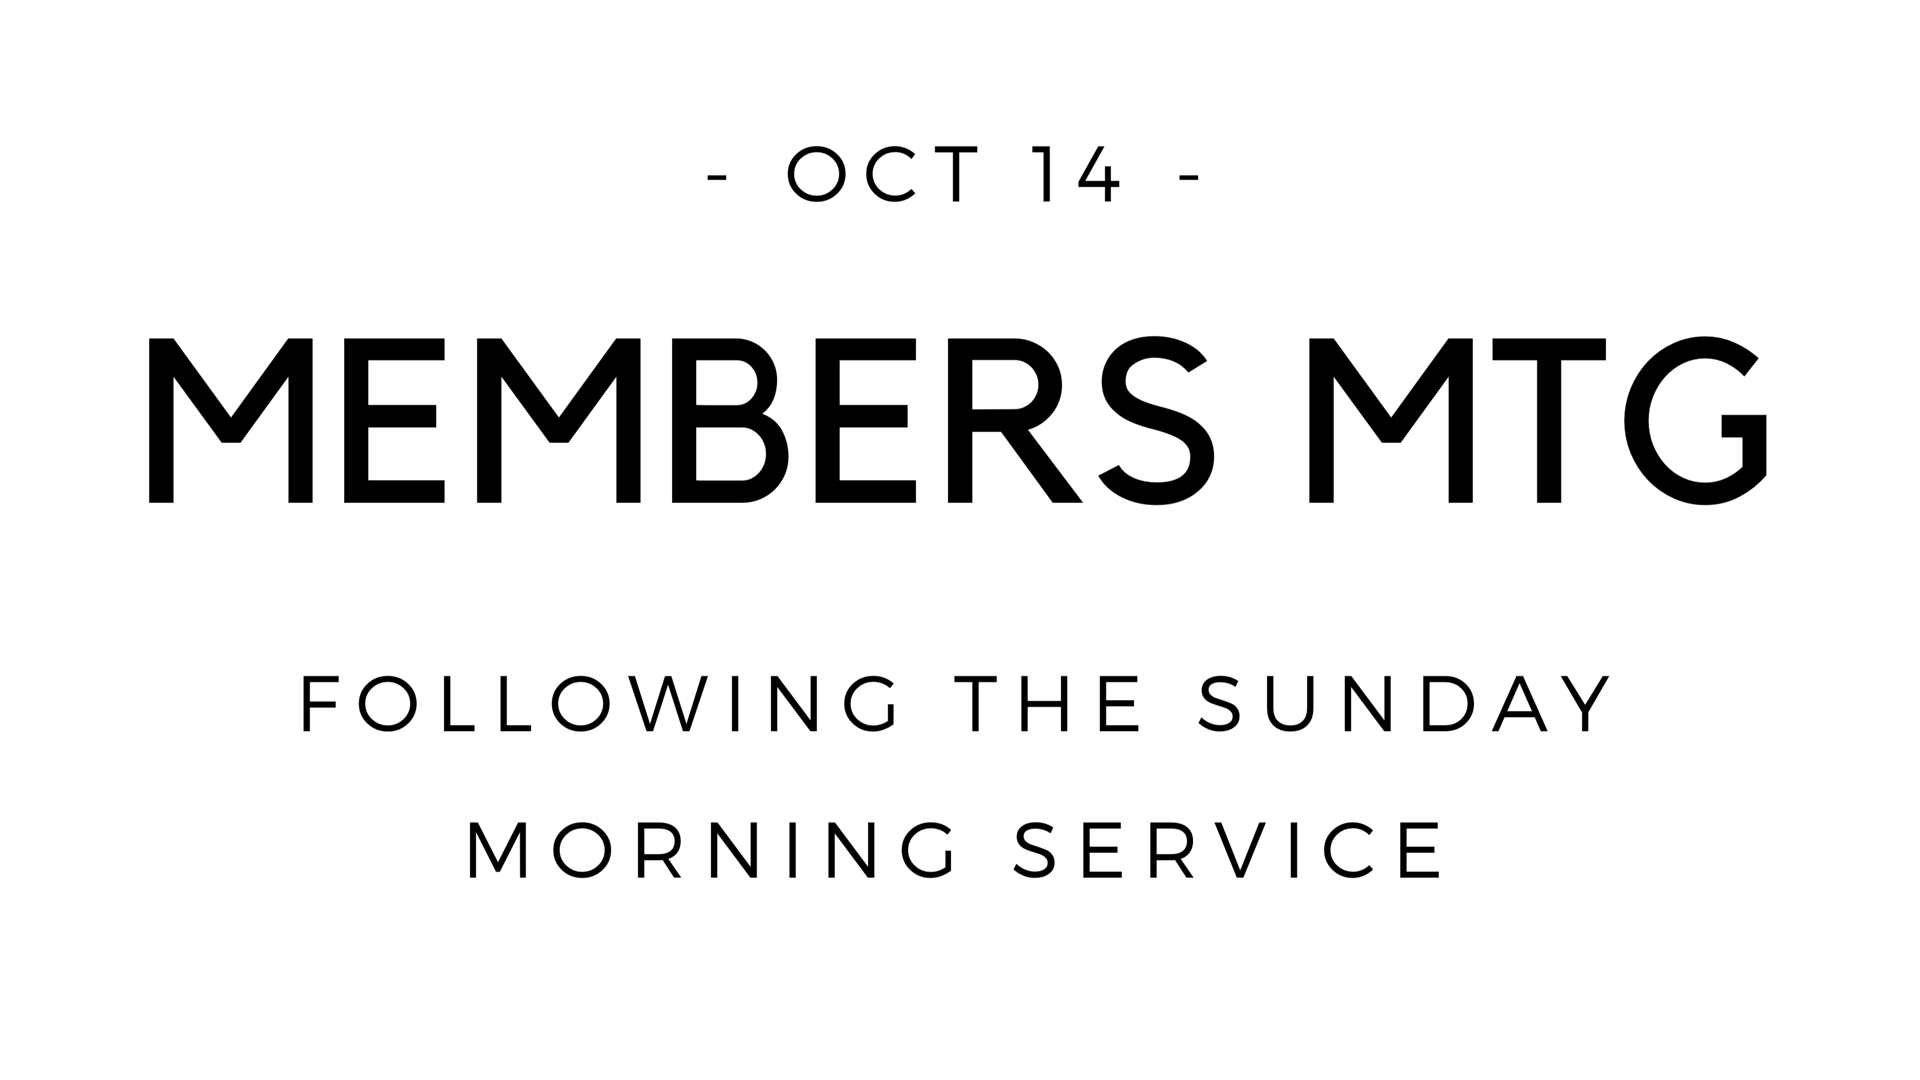 Two Sundays from now on Oct. 14, we'll be having our fall members meeting. It will be a one hour meeting right after service. Everyone is welcome to attend, including non-members.